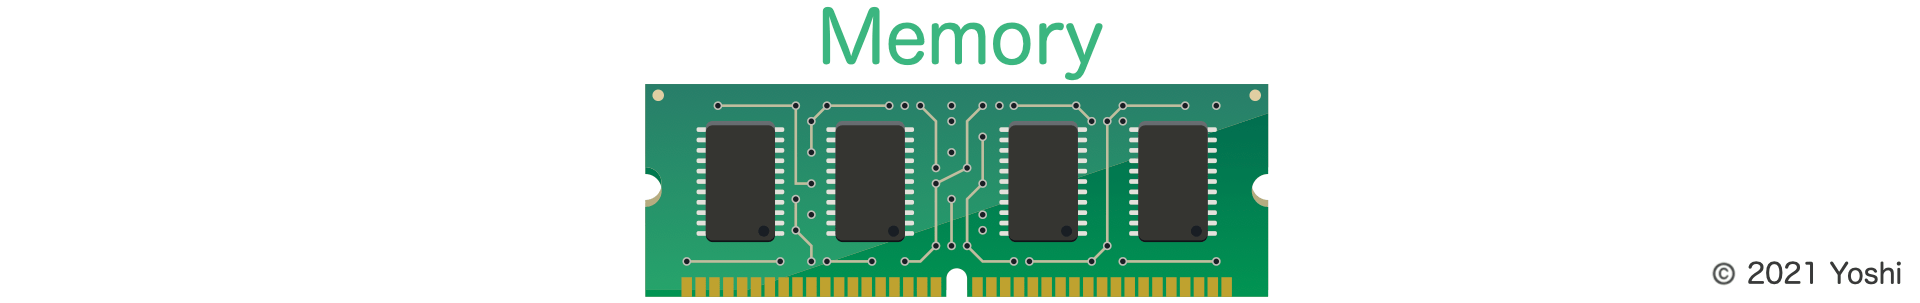 Concept image of memory